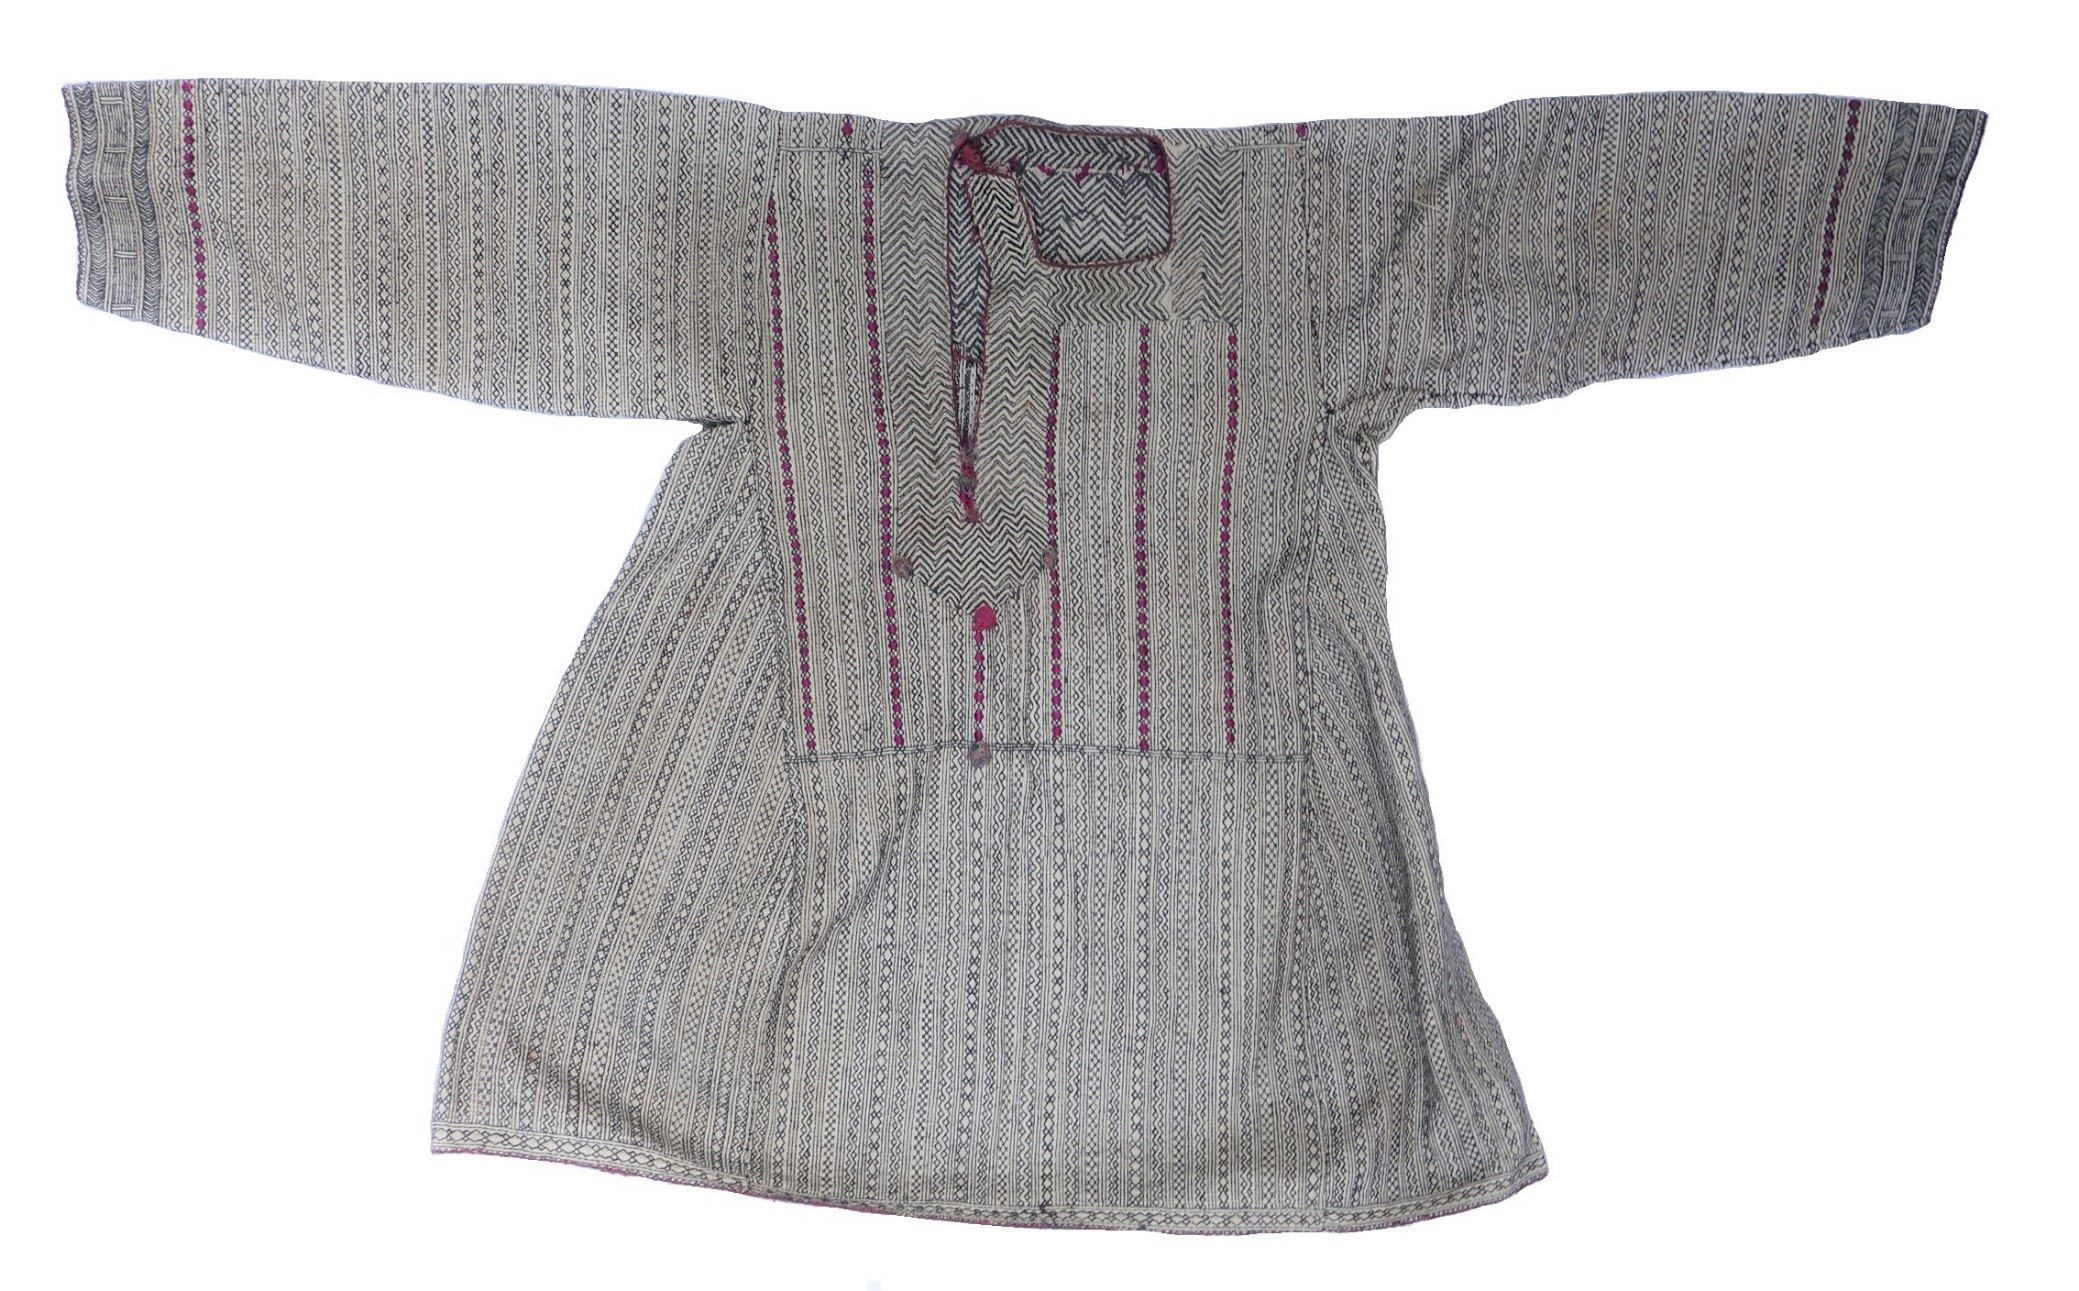 A quilted shirt for a Pashai man, Afghanistan (TRC 2018.2581).